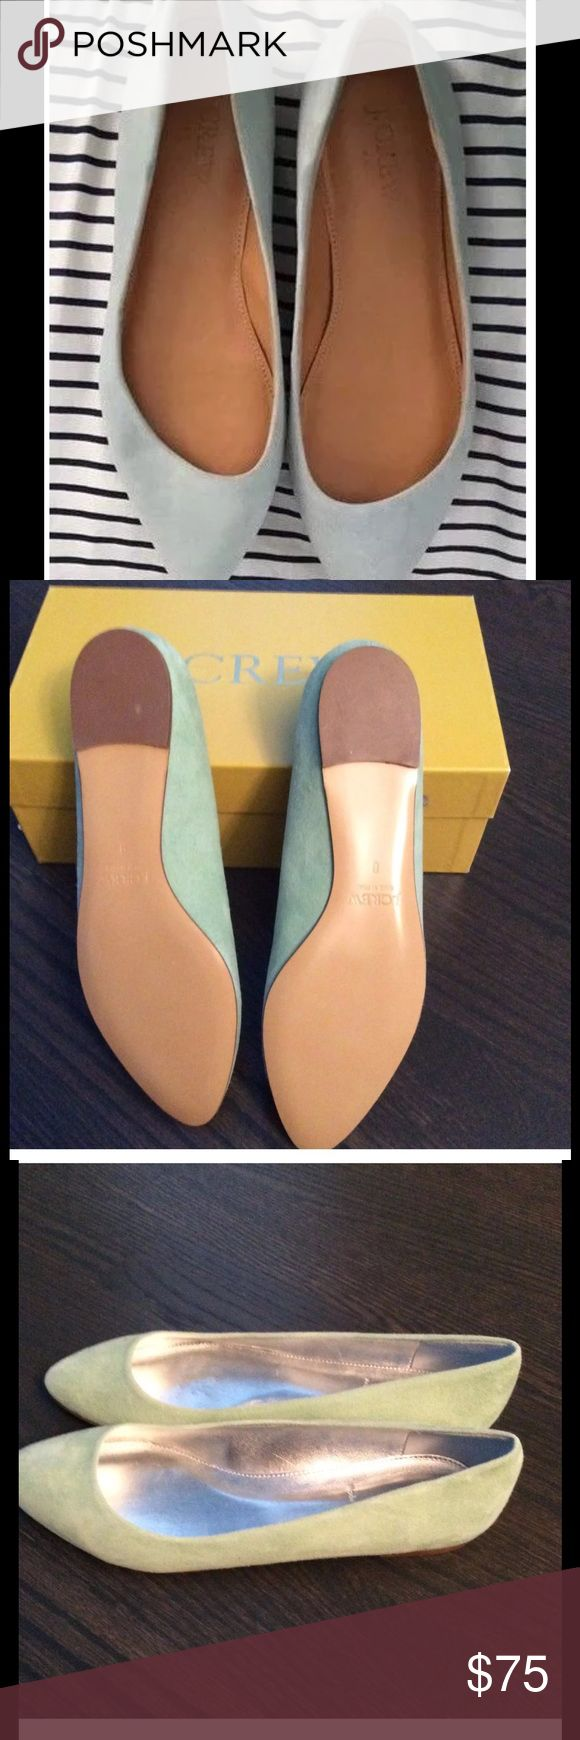 "NIB J. Crew CORALLE Suede Ballet Flats Shoes Gorgeous Light Eucalyptus green. A classic ballet flat with a pointed toe. Suede upper, padded insole. 1/8"" heel. Style #11701. J. Crew Shoes Flats & Loafers"